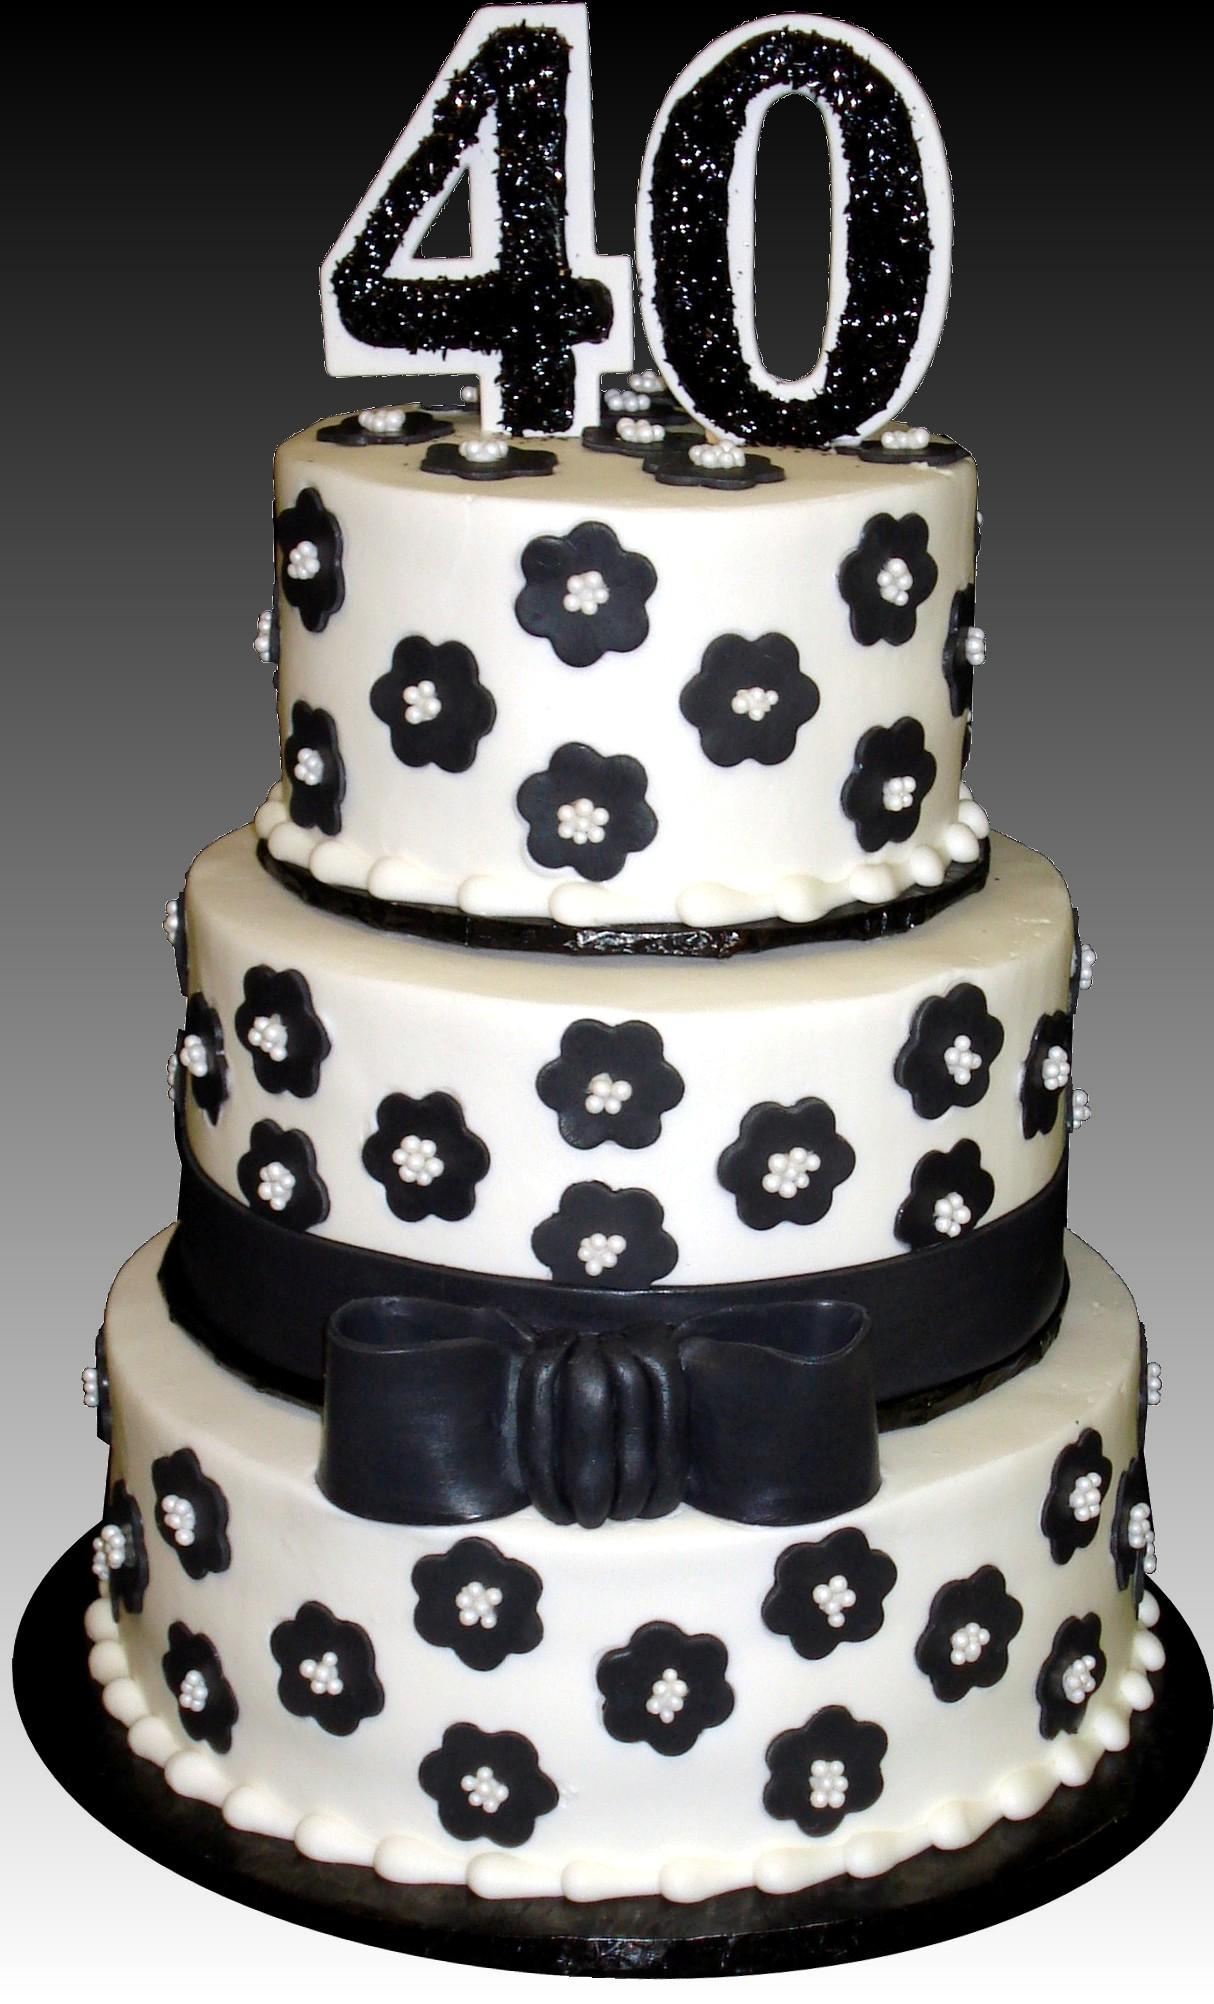 12 Pearls With Black And White For Birthday Cakes Birthday 14th